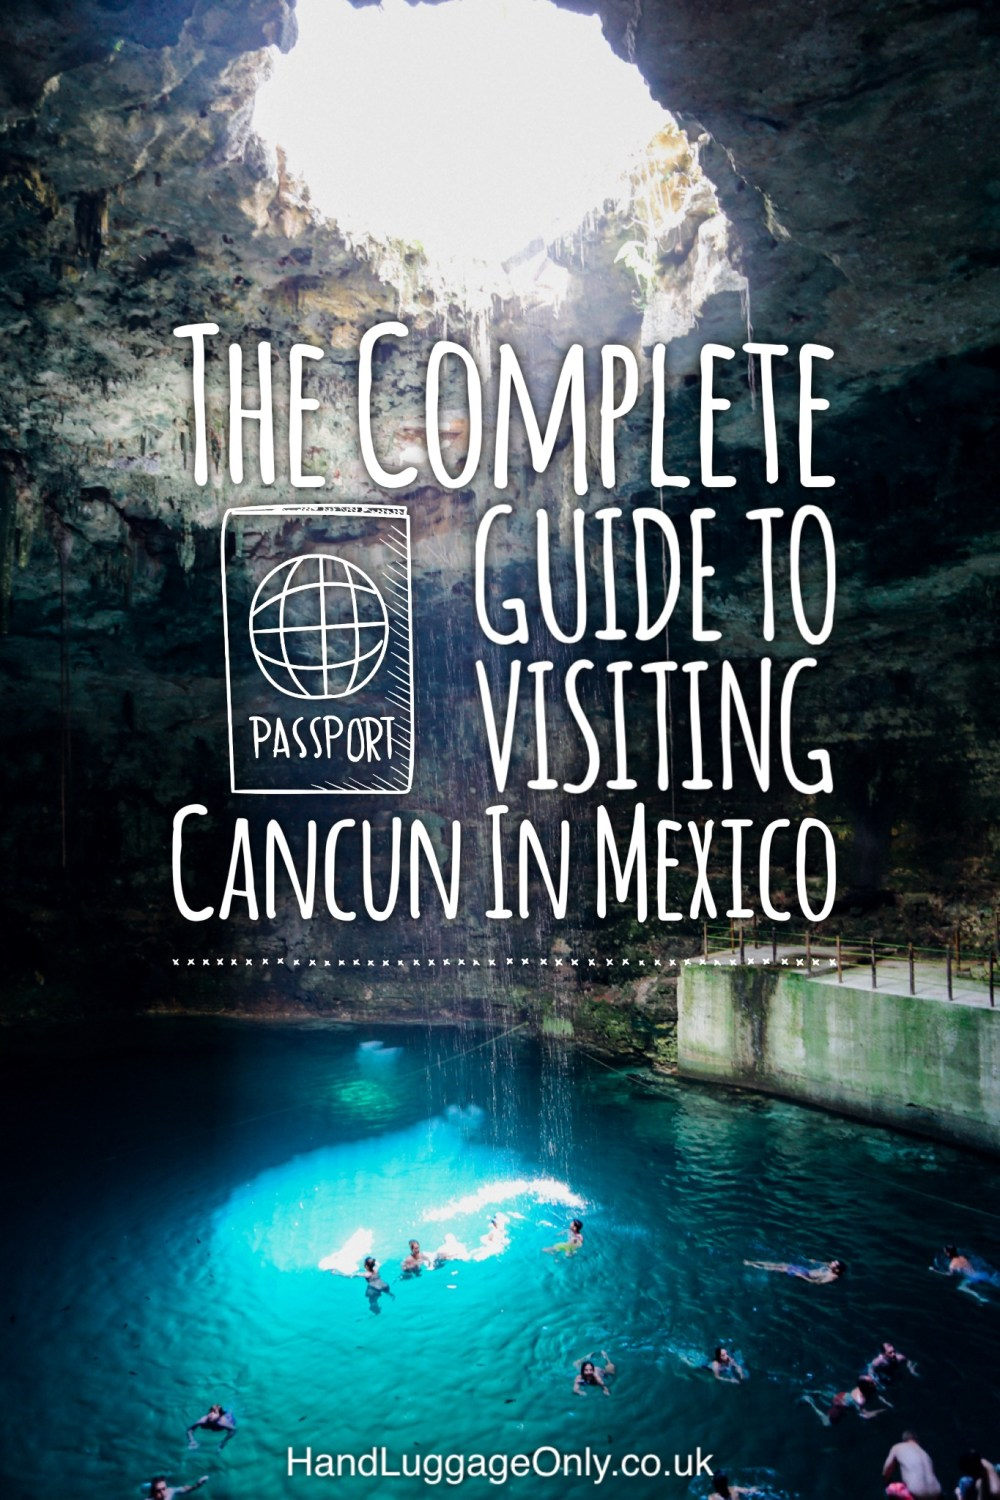 The Complete Guide To Visiting Cancun In Mexico